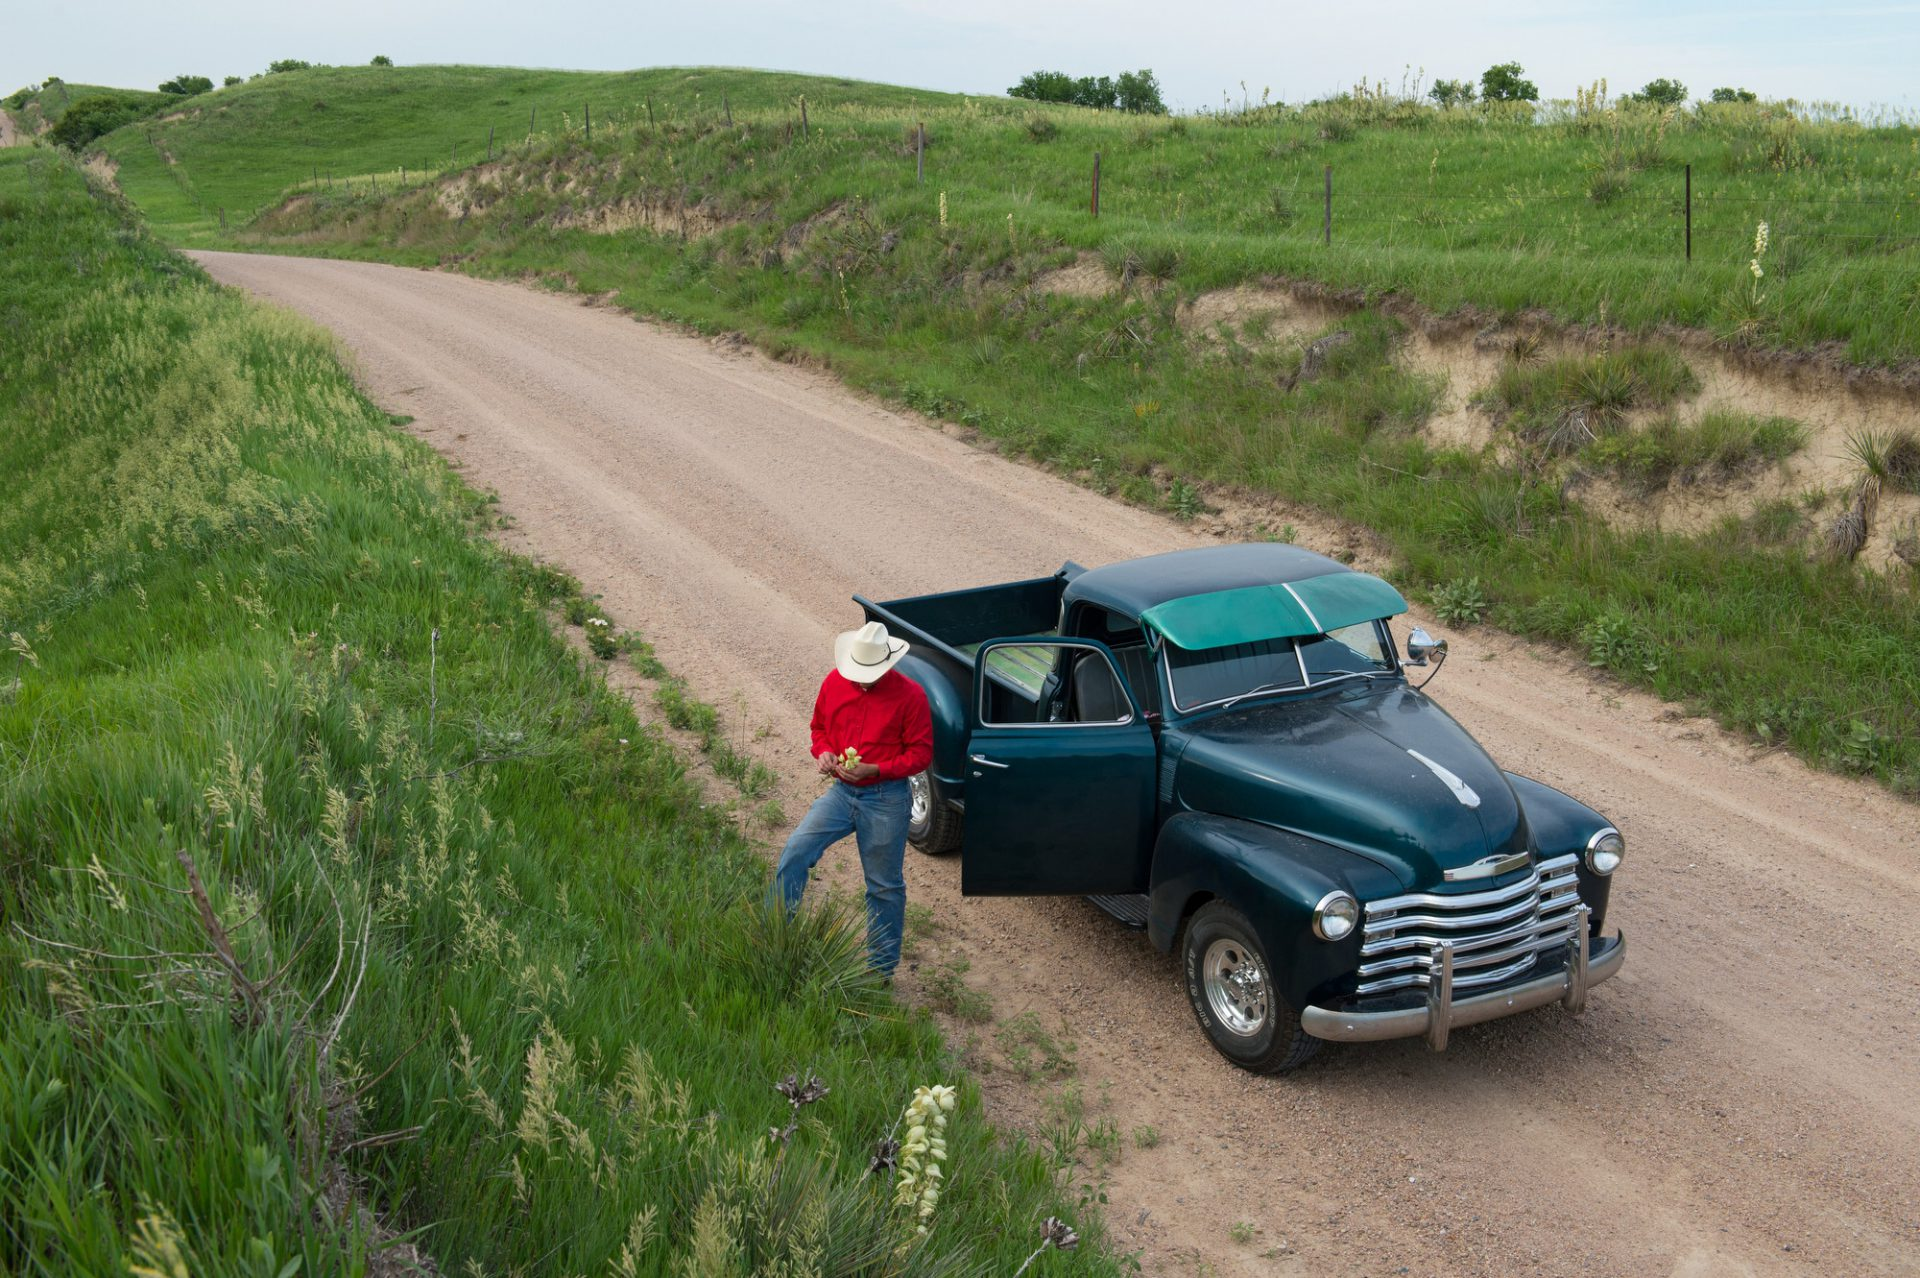 Photo: A young man in a cowboy hat picks a flower near his truck on a gravel road.